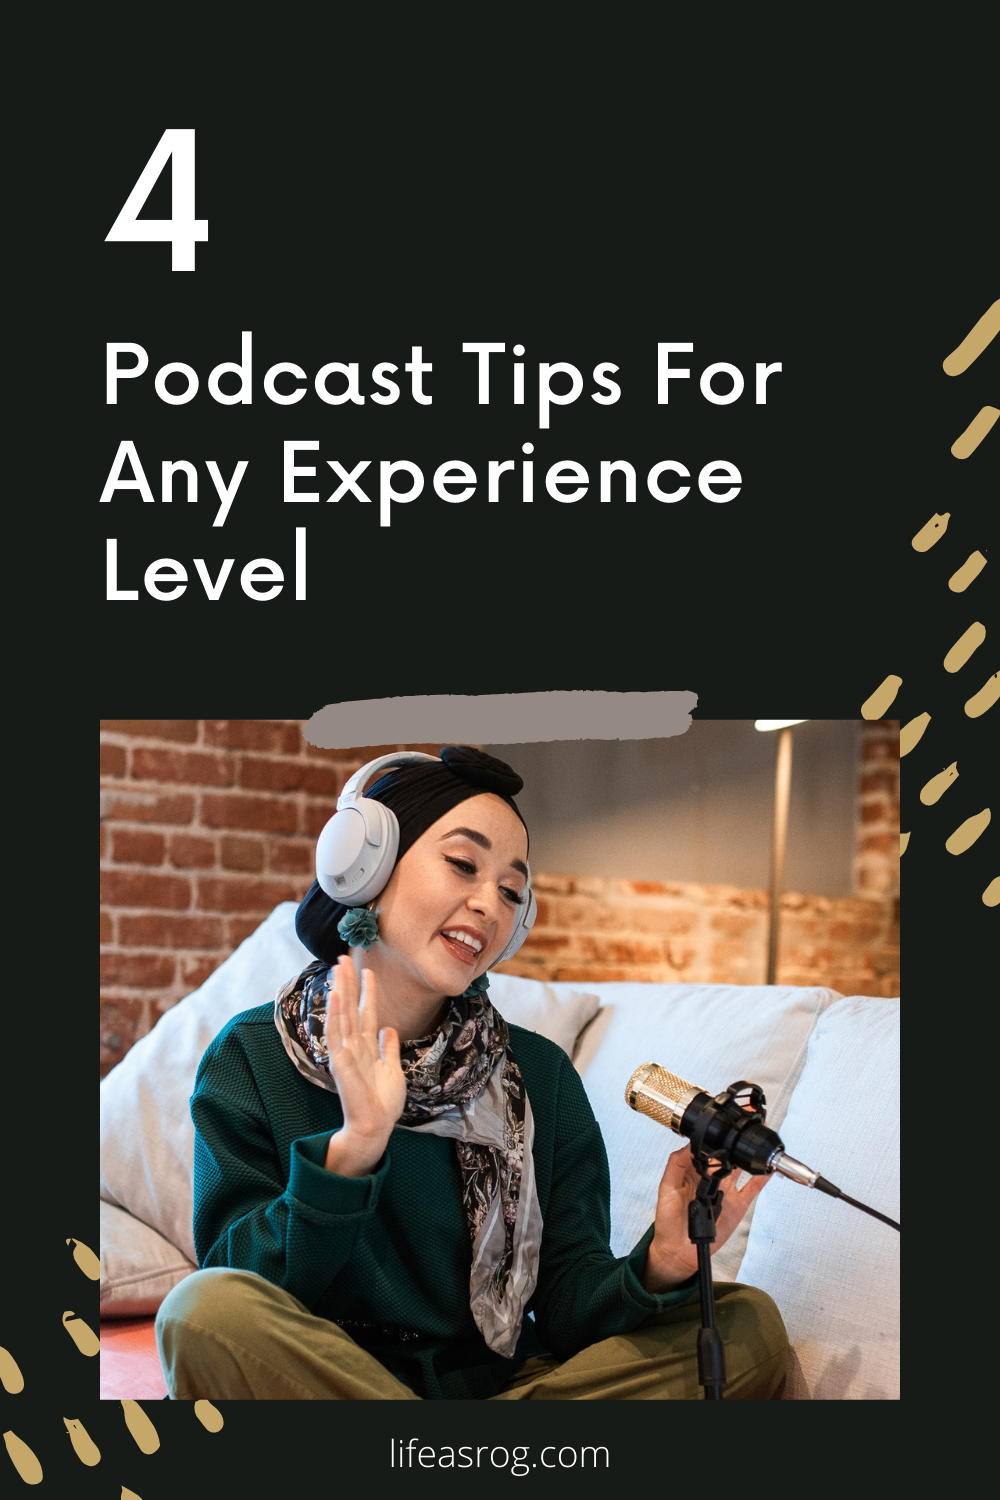 4 Podcast Tips For Any Experience Level